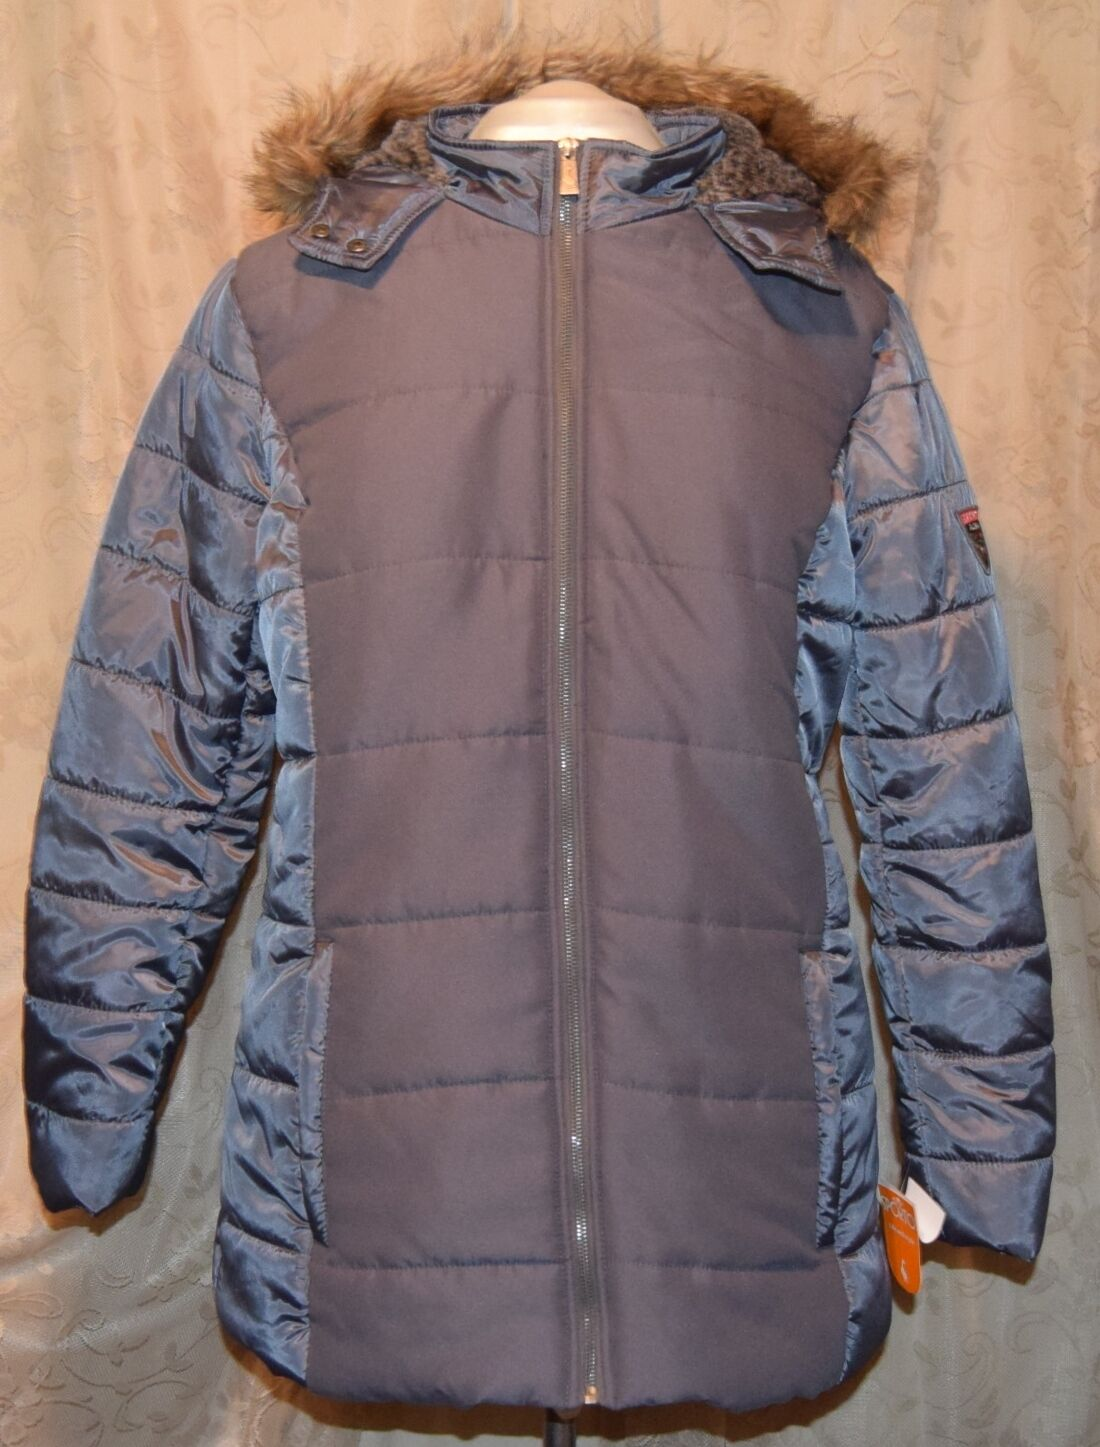 Details about HSN SPORTO WARM QUILT ZIP FRONT PUFFER COAT WPATCH